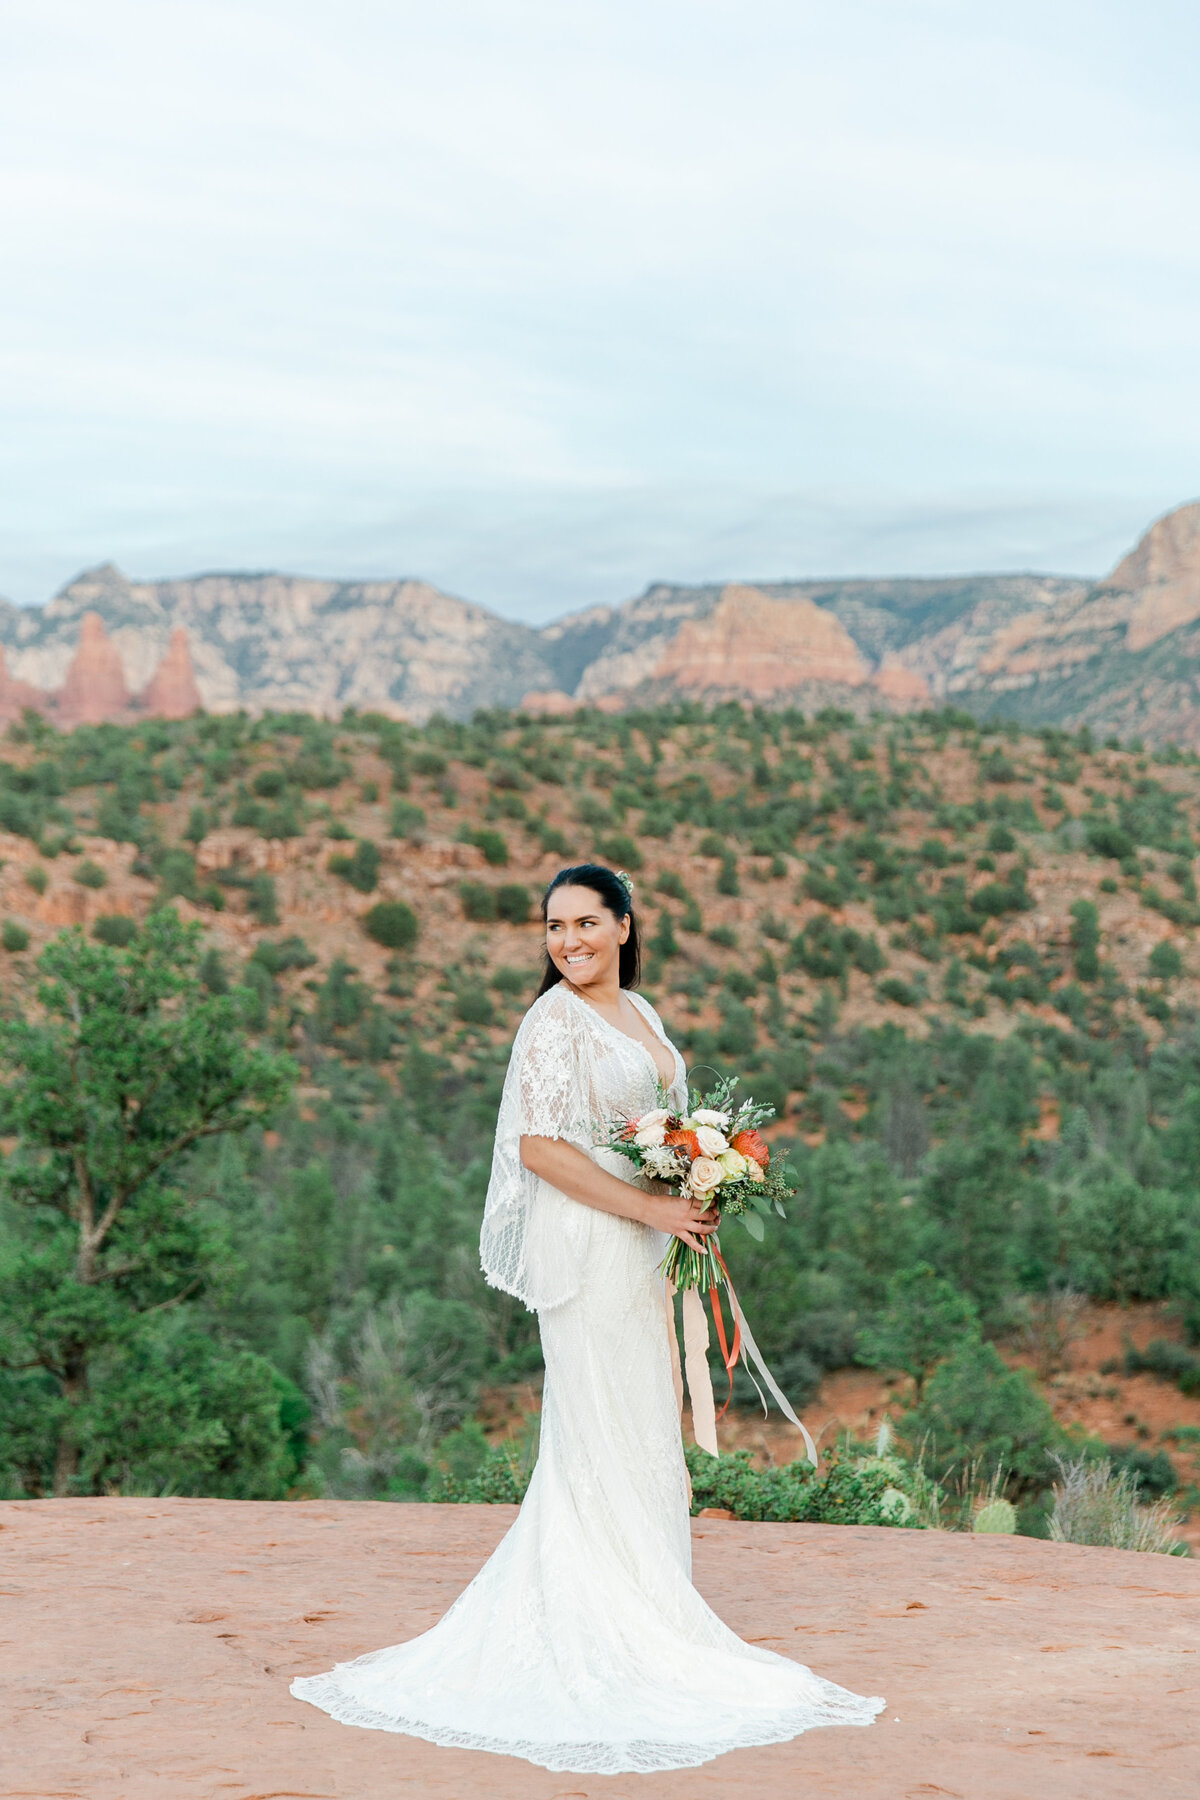 Karlie Colleen Photography - Sedona Arizona Elopement Wedding - Sara & Alfredo-277